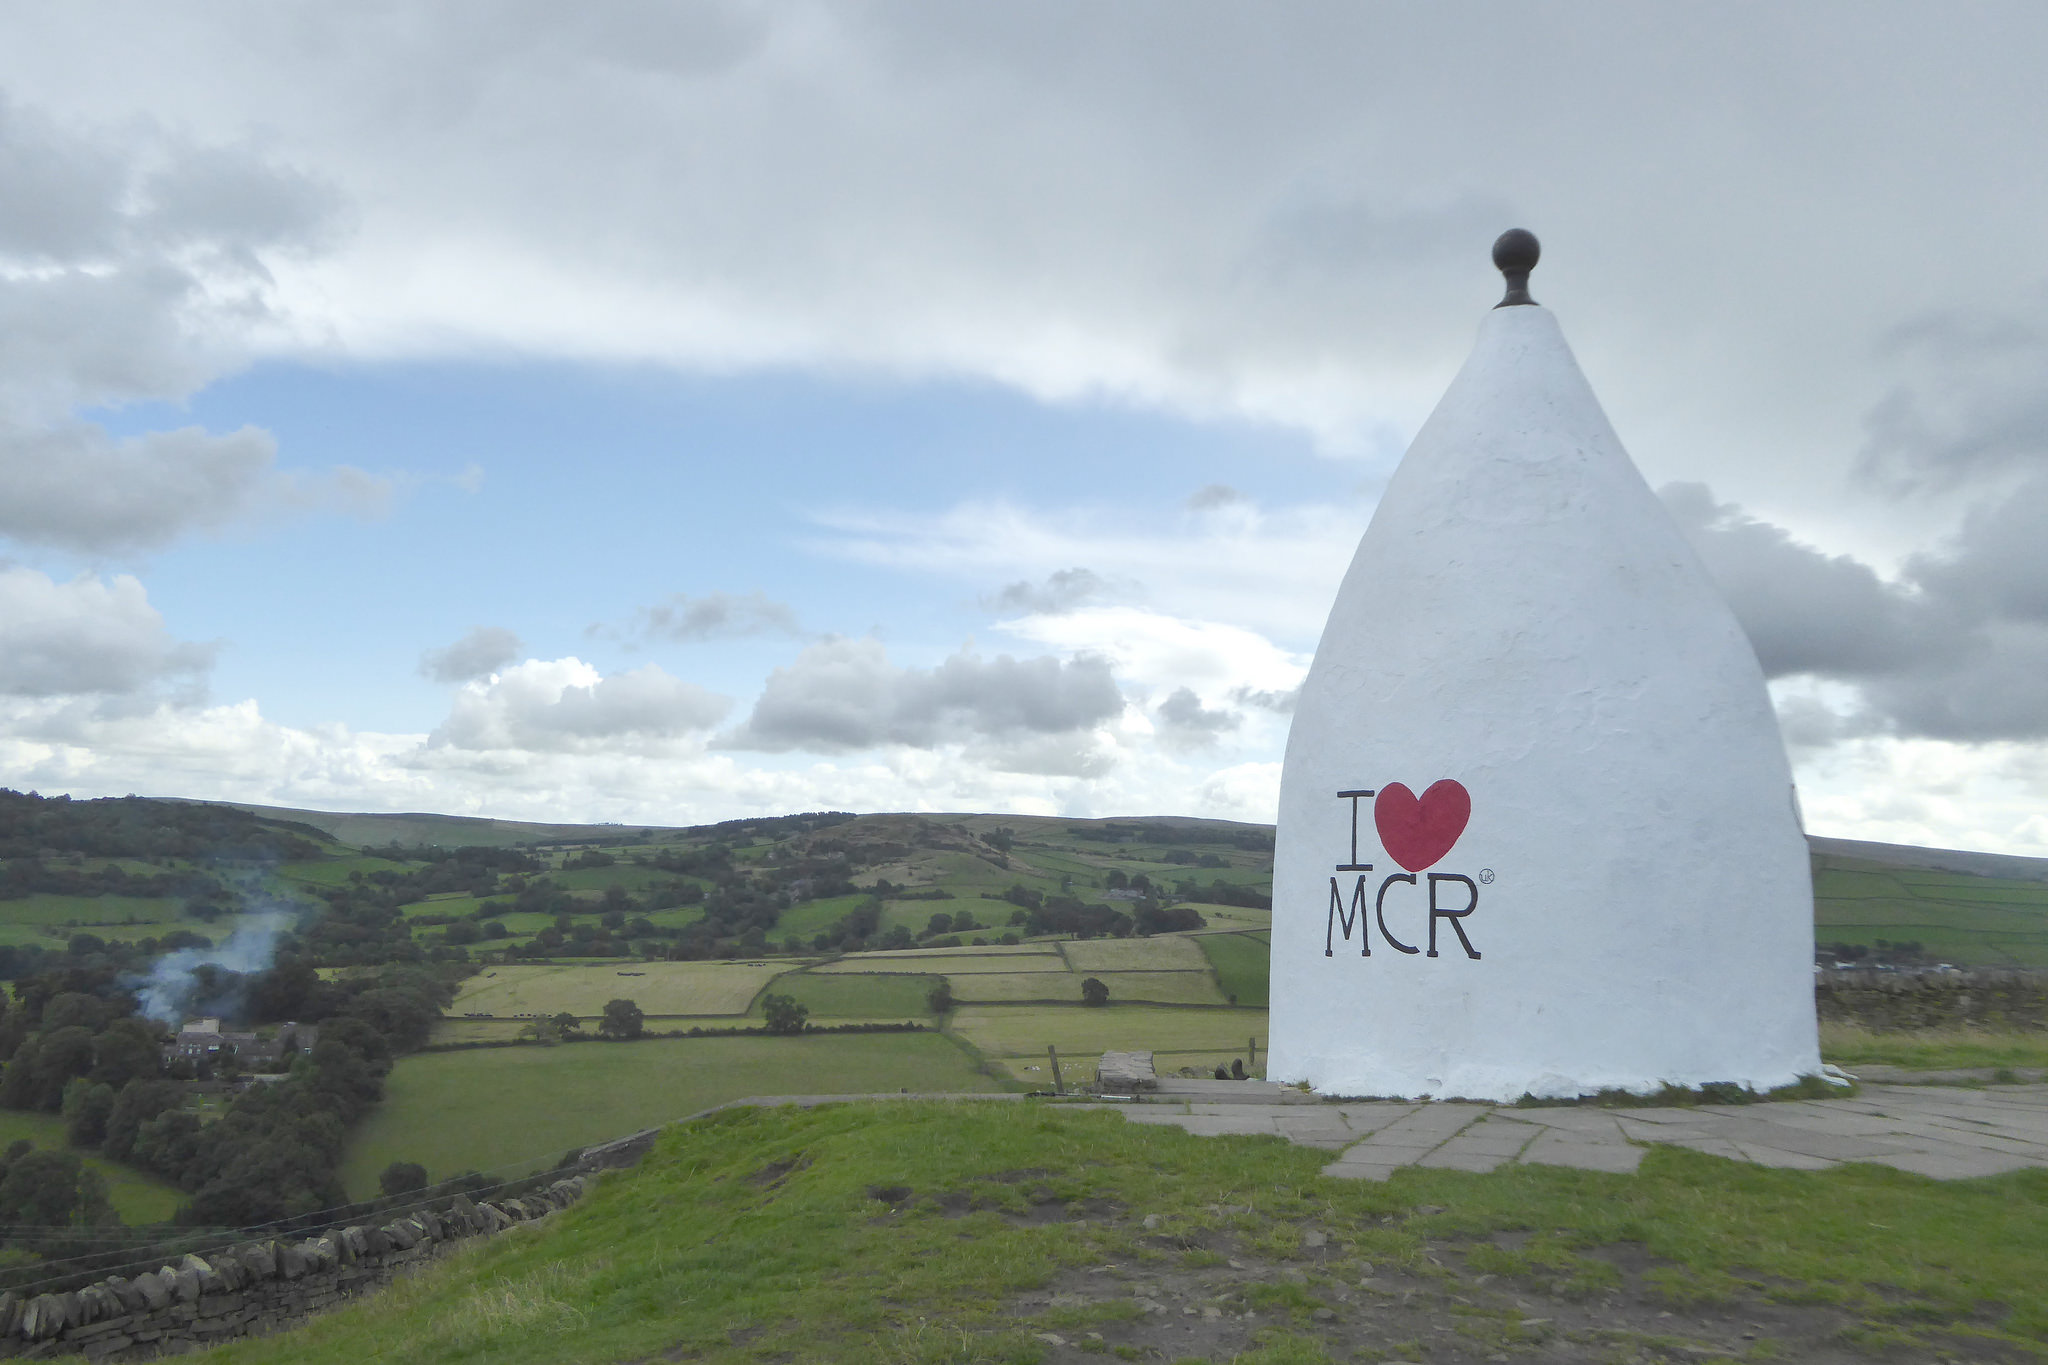 White Nancy, near Bollington